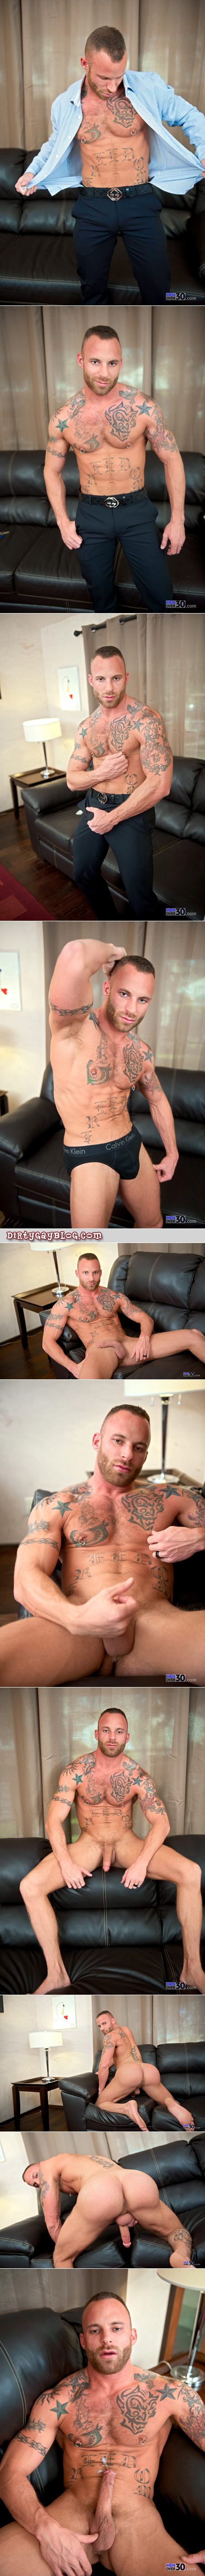 Heavily tattooed hairy muscle stud jacking off on the couch.